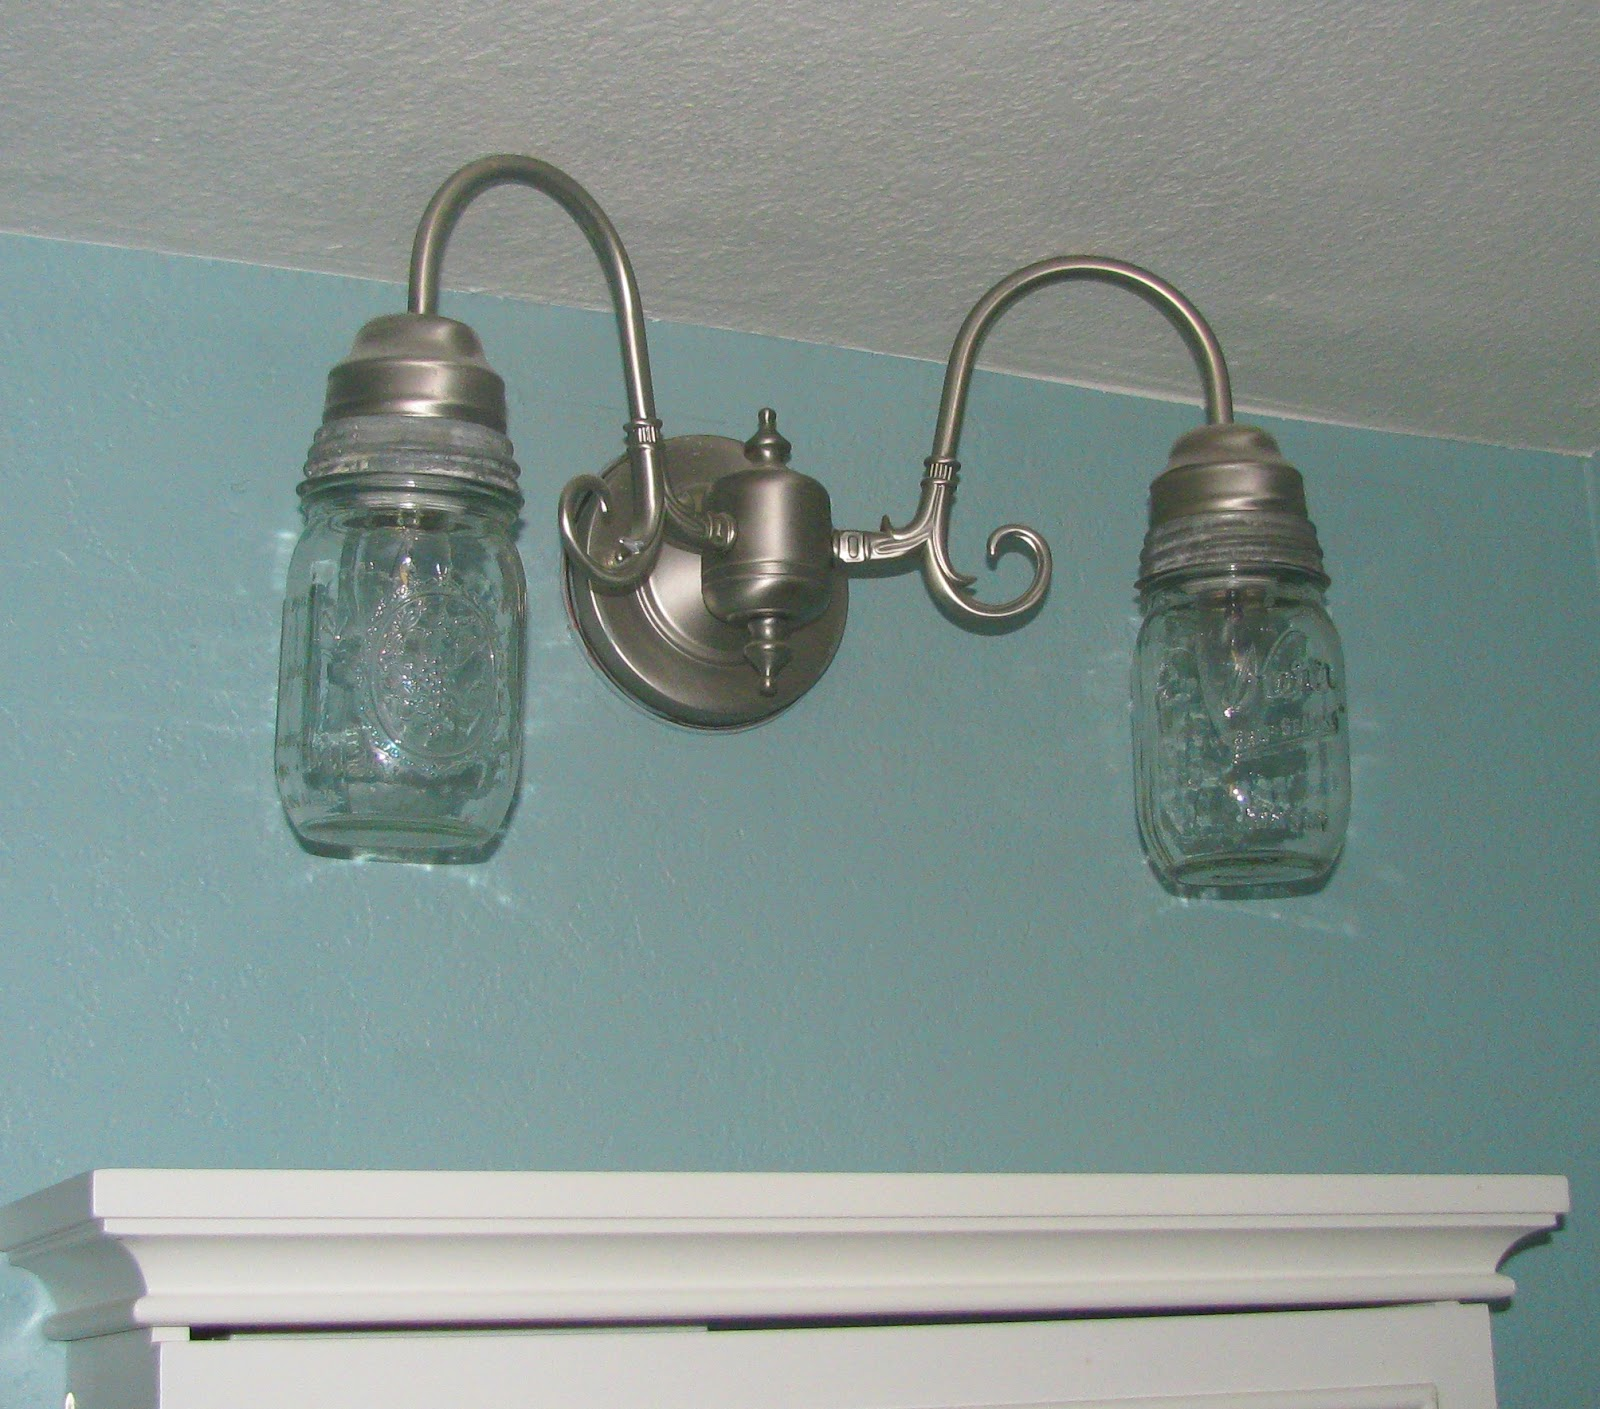 My 3 monsters couldnt be easier mason jar lamp makeover 4192012 arubaitofo Gallery